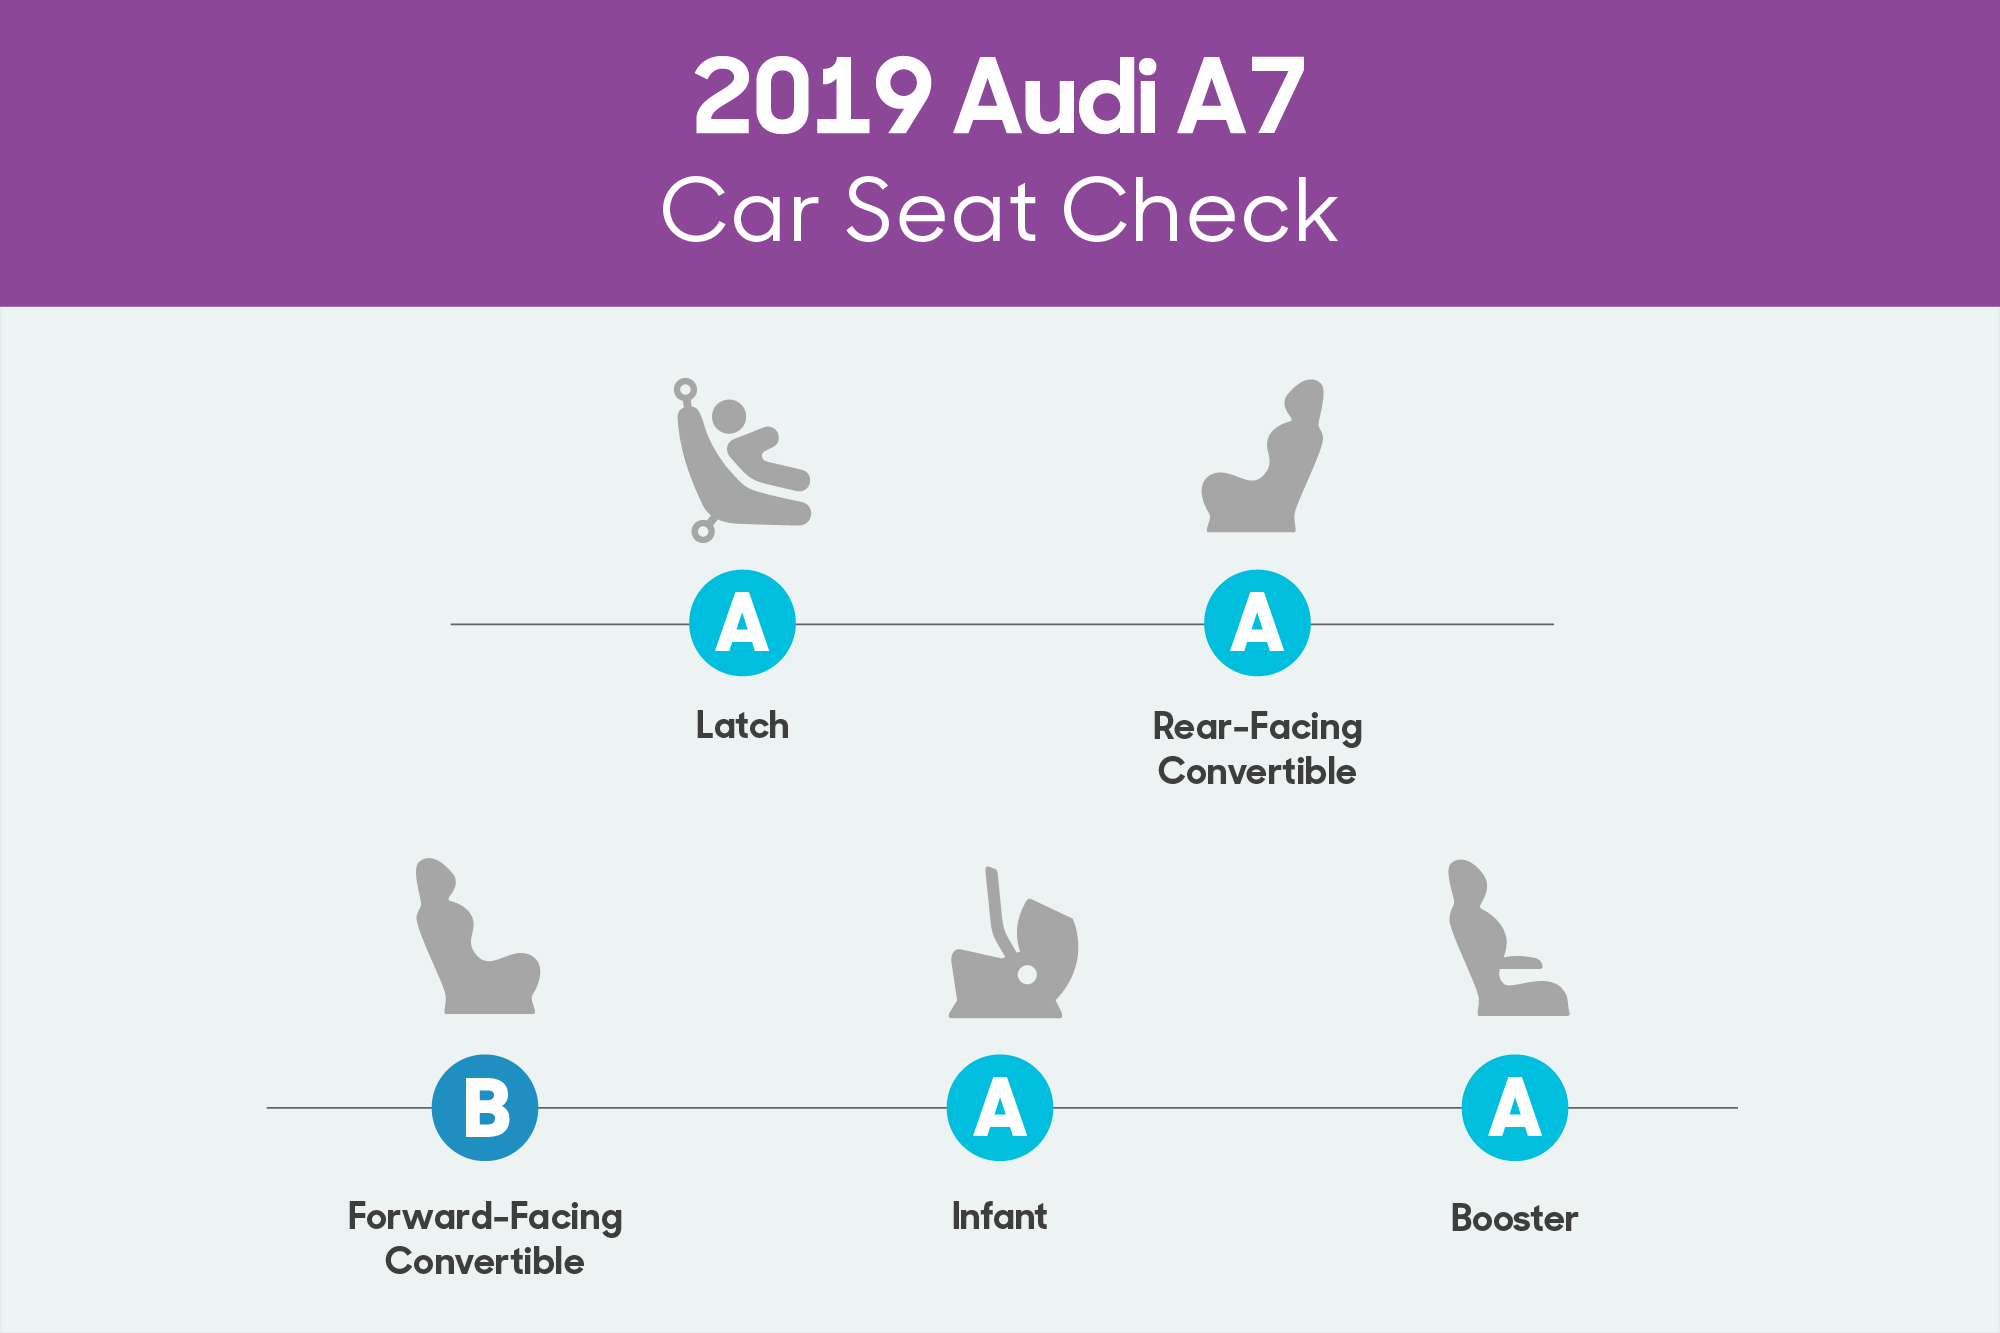 hight resolution of audi a7 2019 car seat check scorecard png